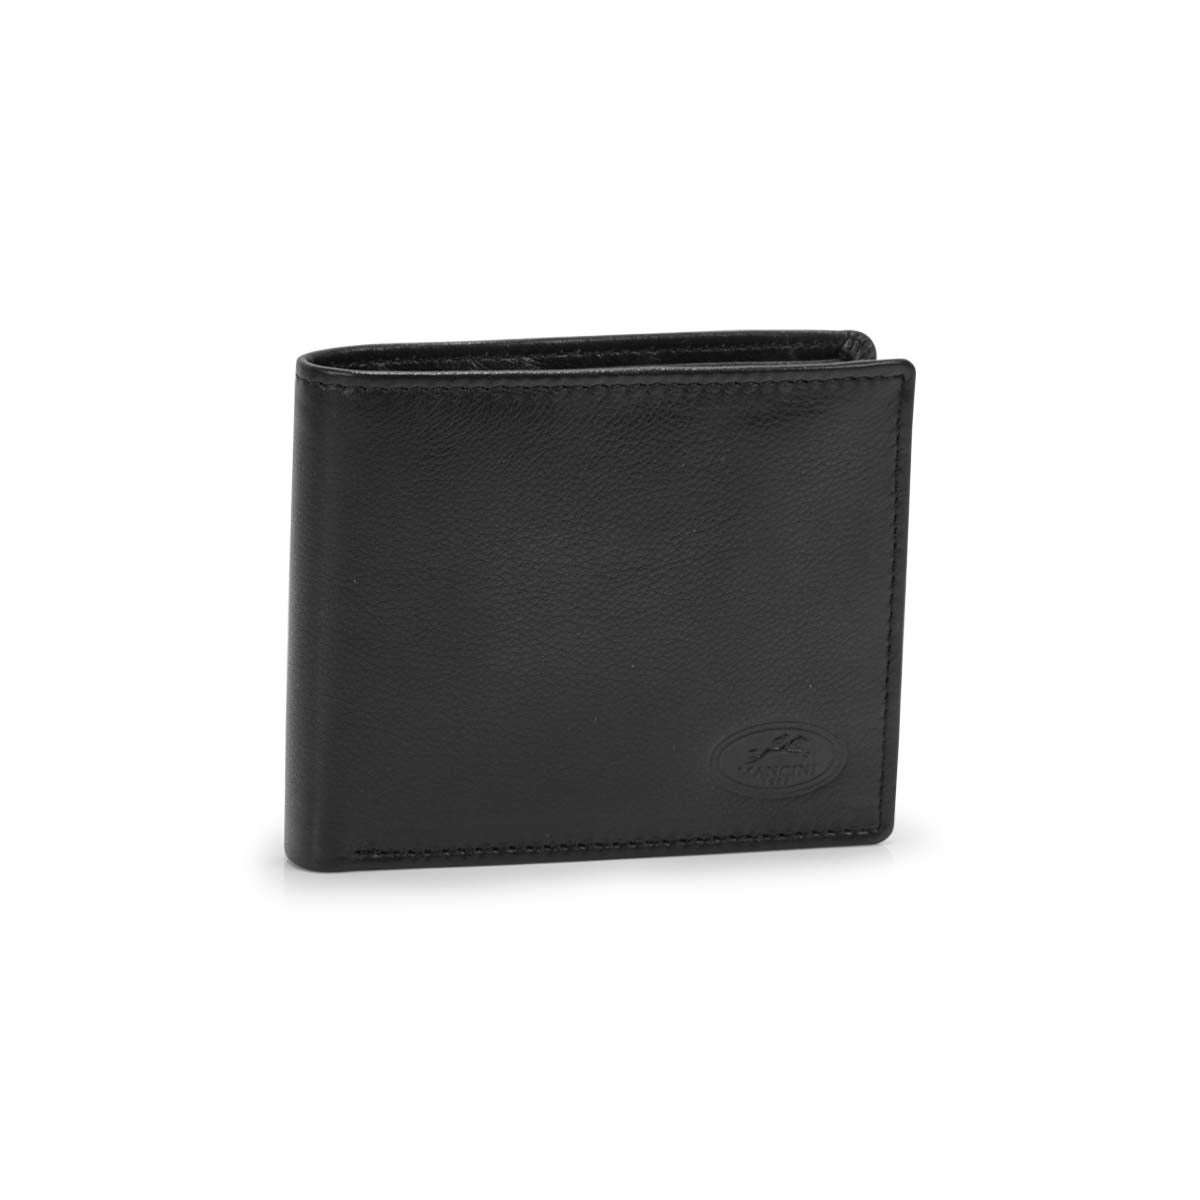 Men's LEFT WING black RFID secure wallet